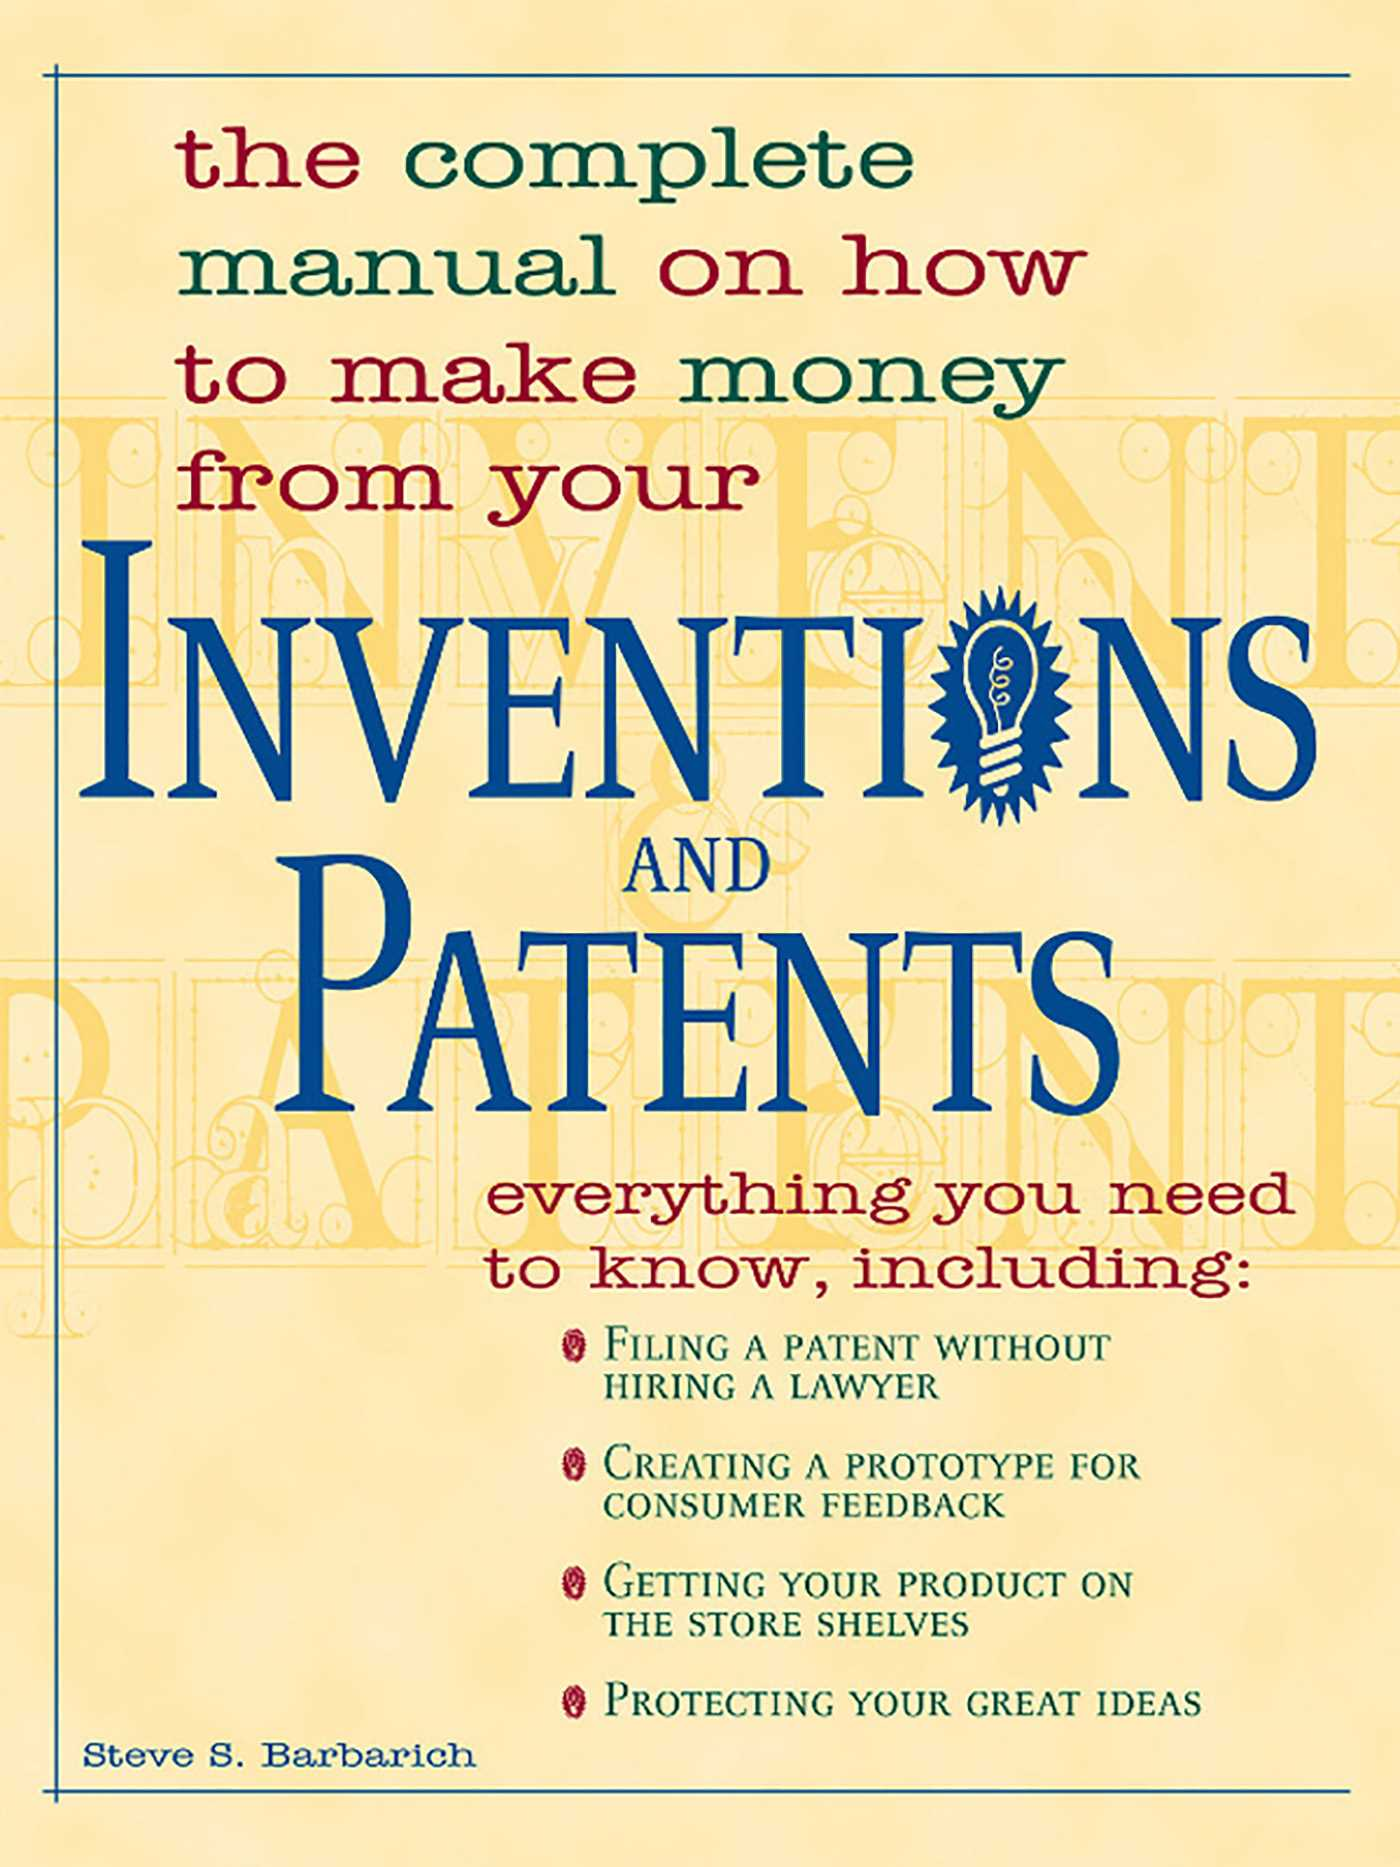 Inventions and patents 9781440519581 hr